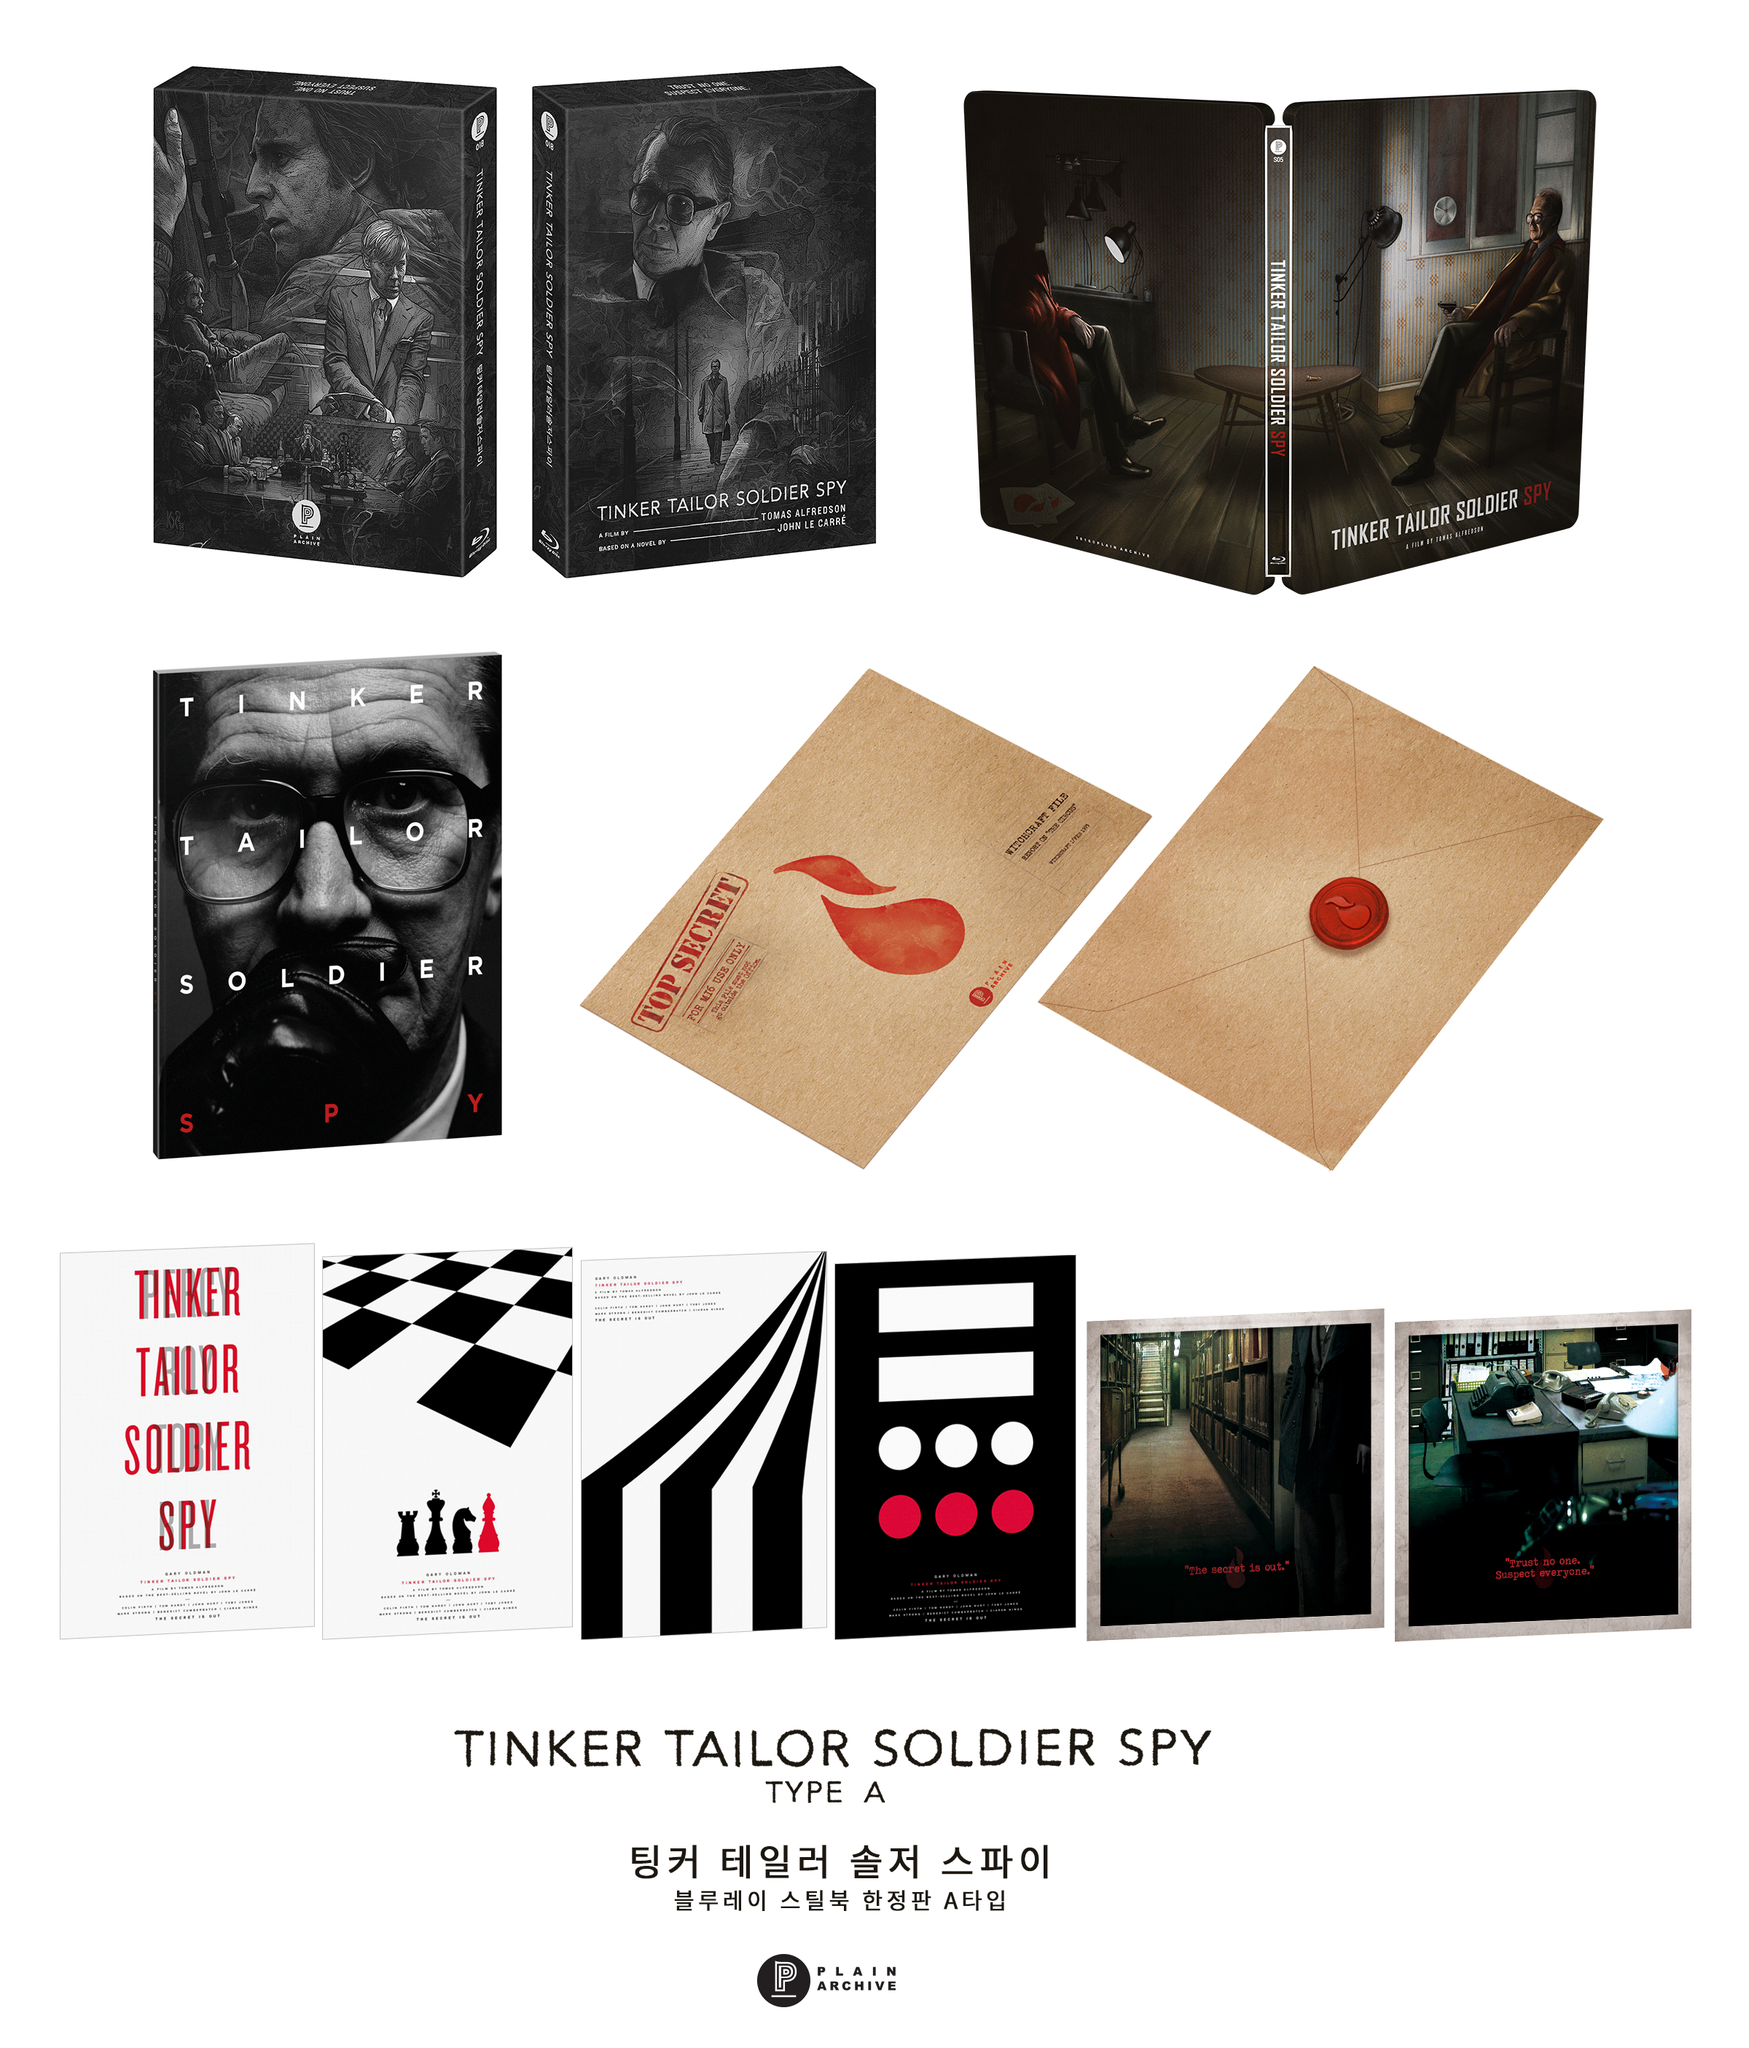 TINKER TAILOR SOLDIER SPY Steelbook : Full Slip A